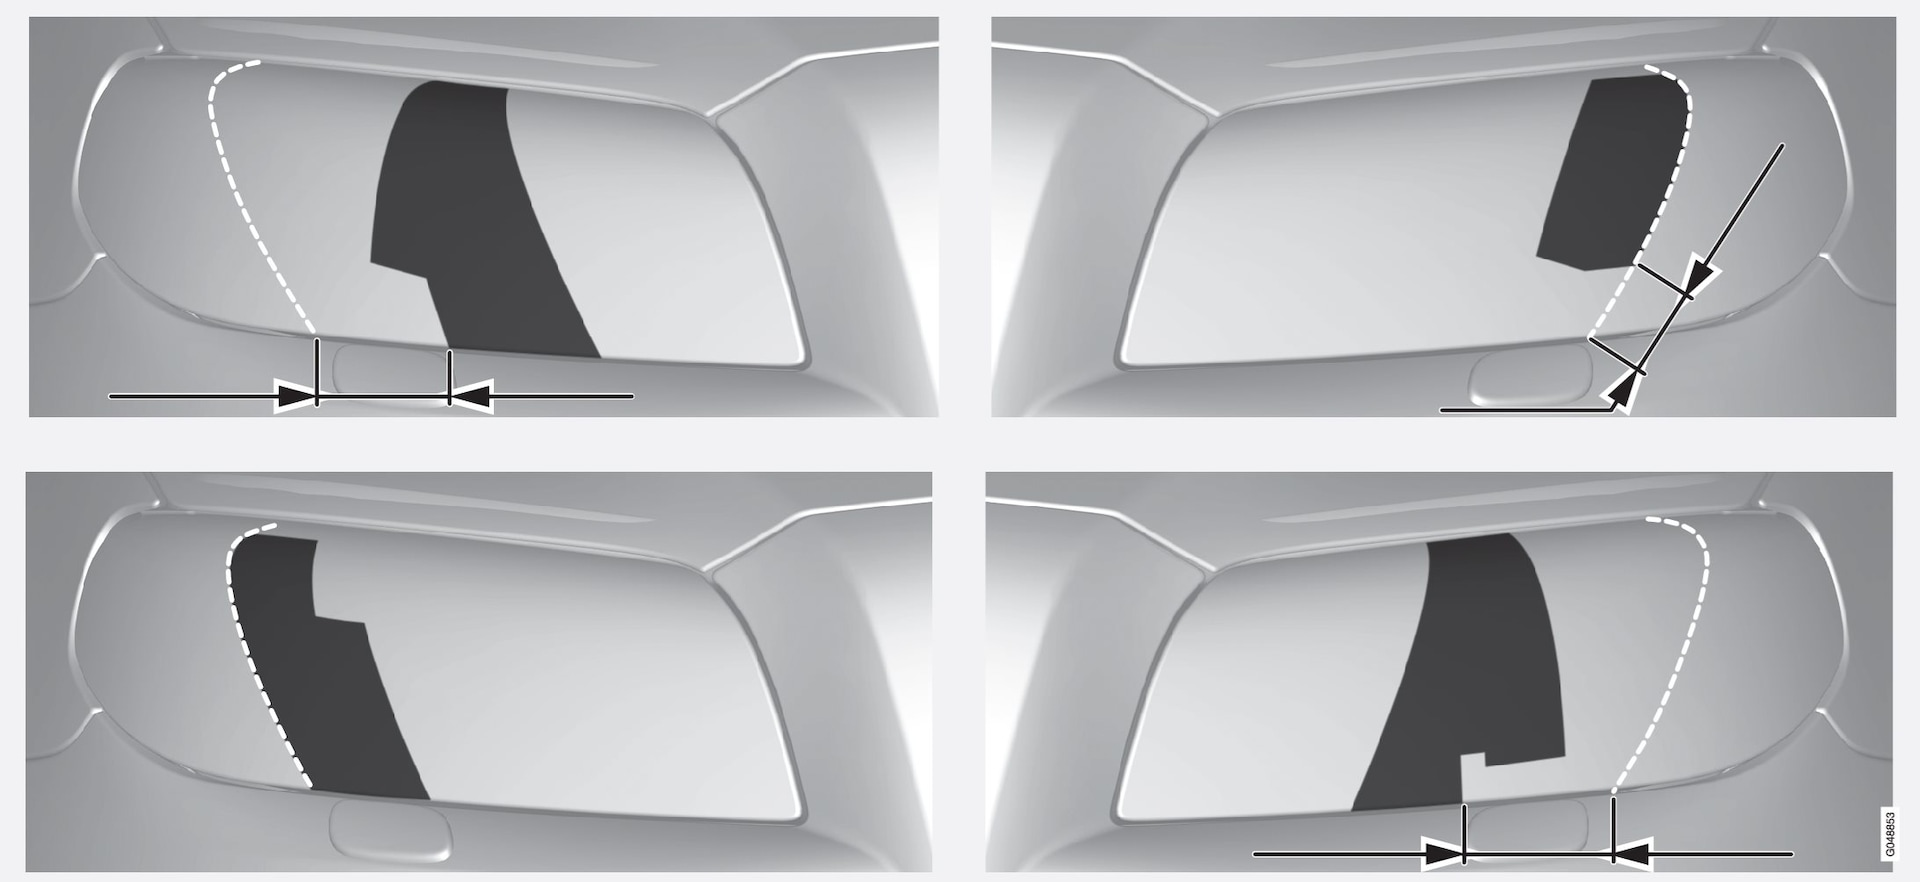 Upper row: left-hand drive cars, templates A and B. Lower row: right-hand drive cars, templates C and D.